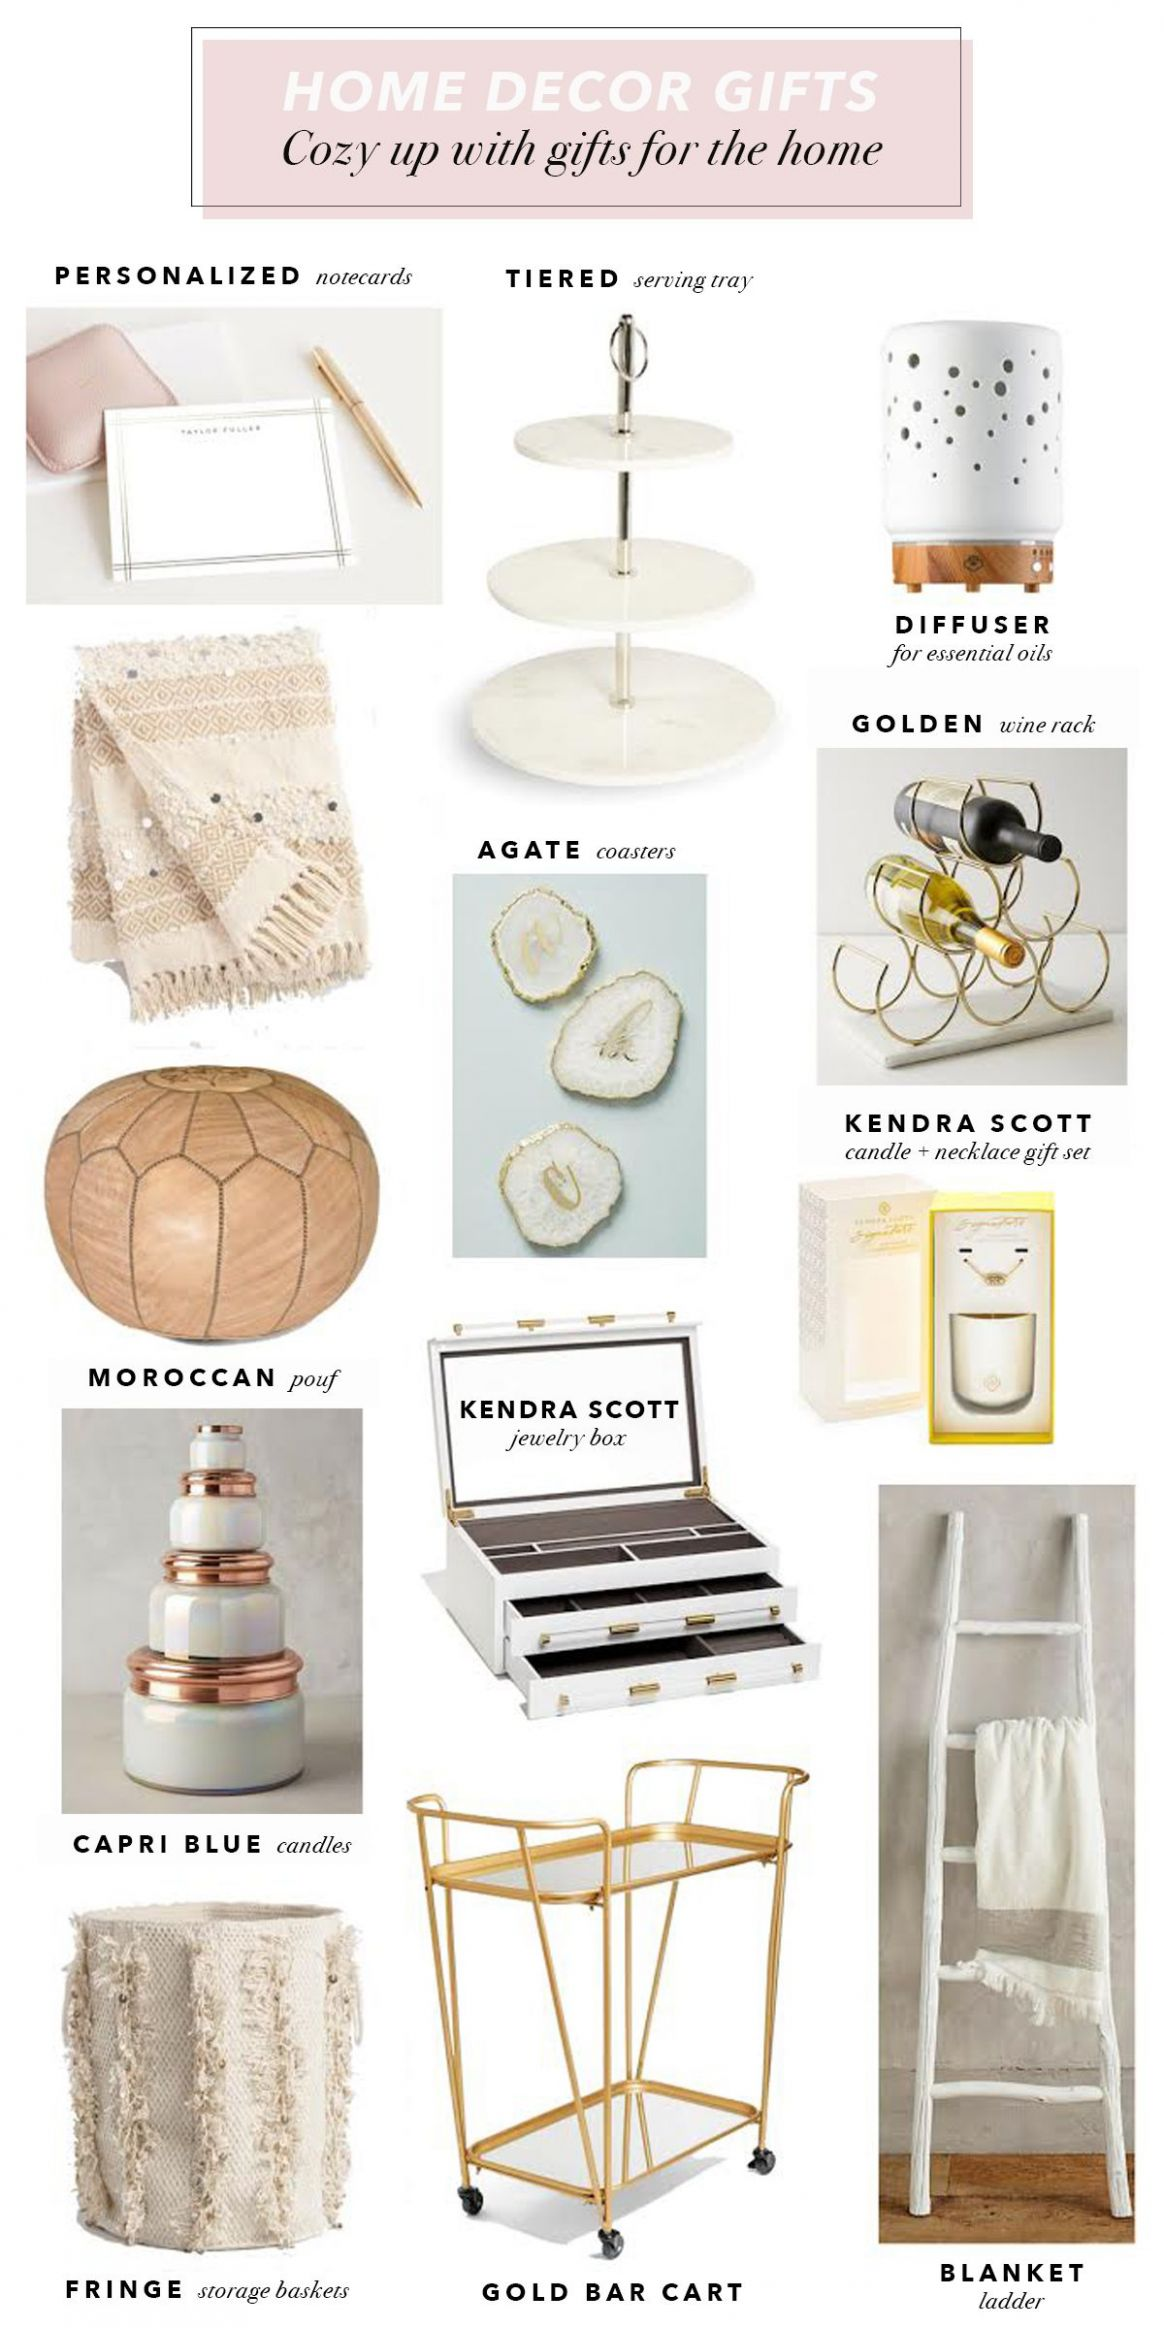 Holiday Home Decor Gift Ideas | Holiday home decor, Decor gifts - home office gift ideas